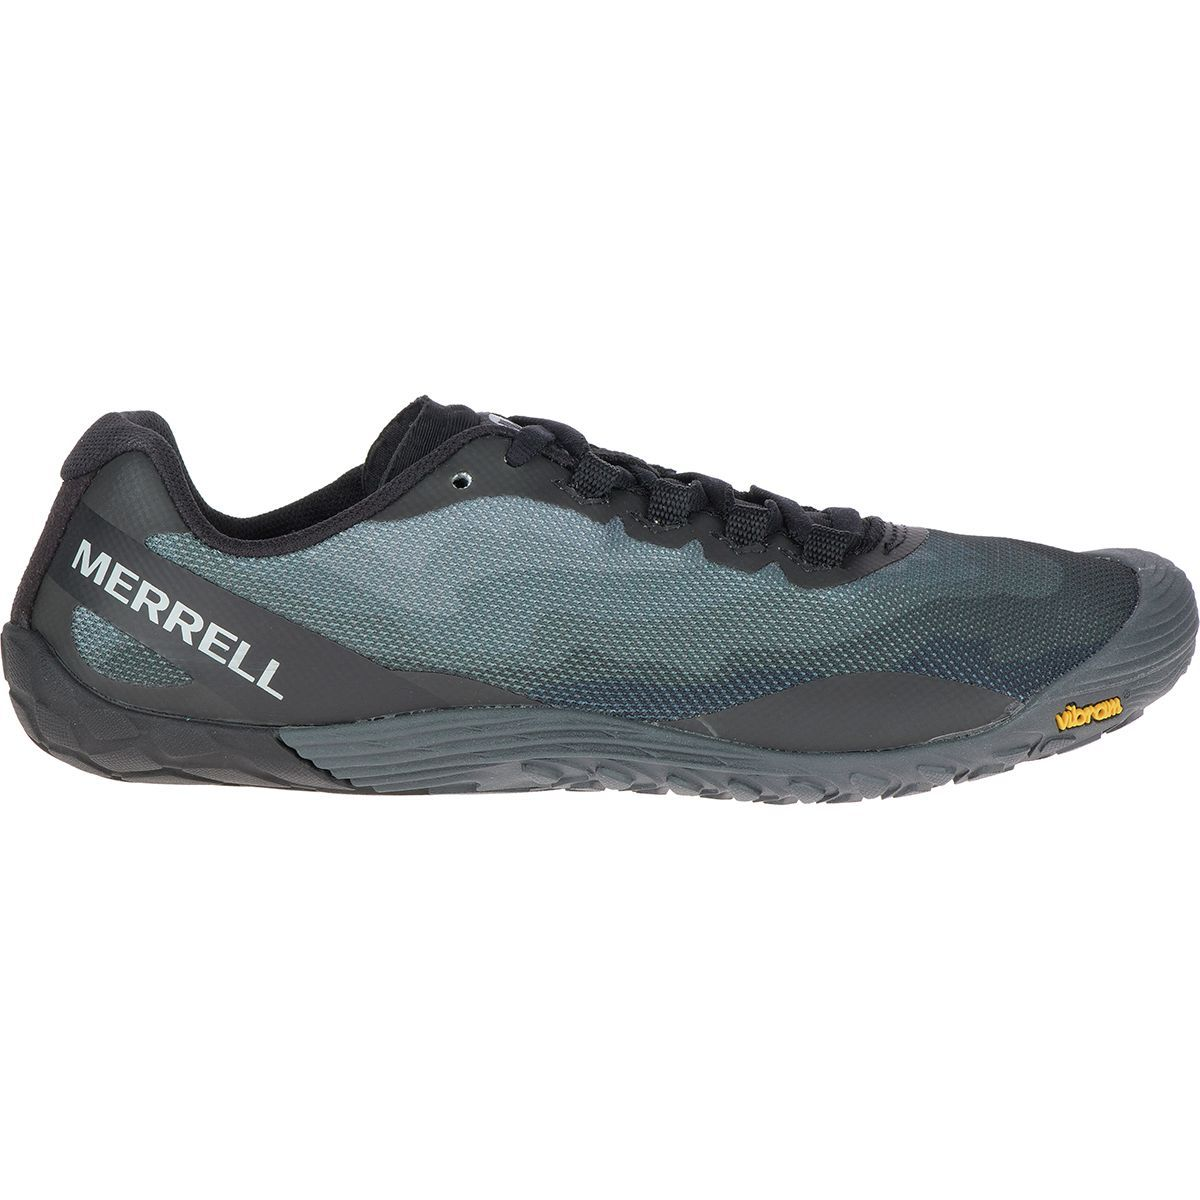 merrell trail glove 4 ladies uk